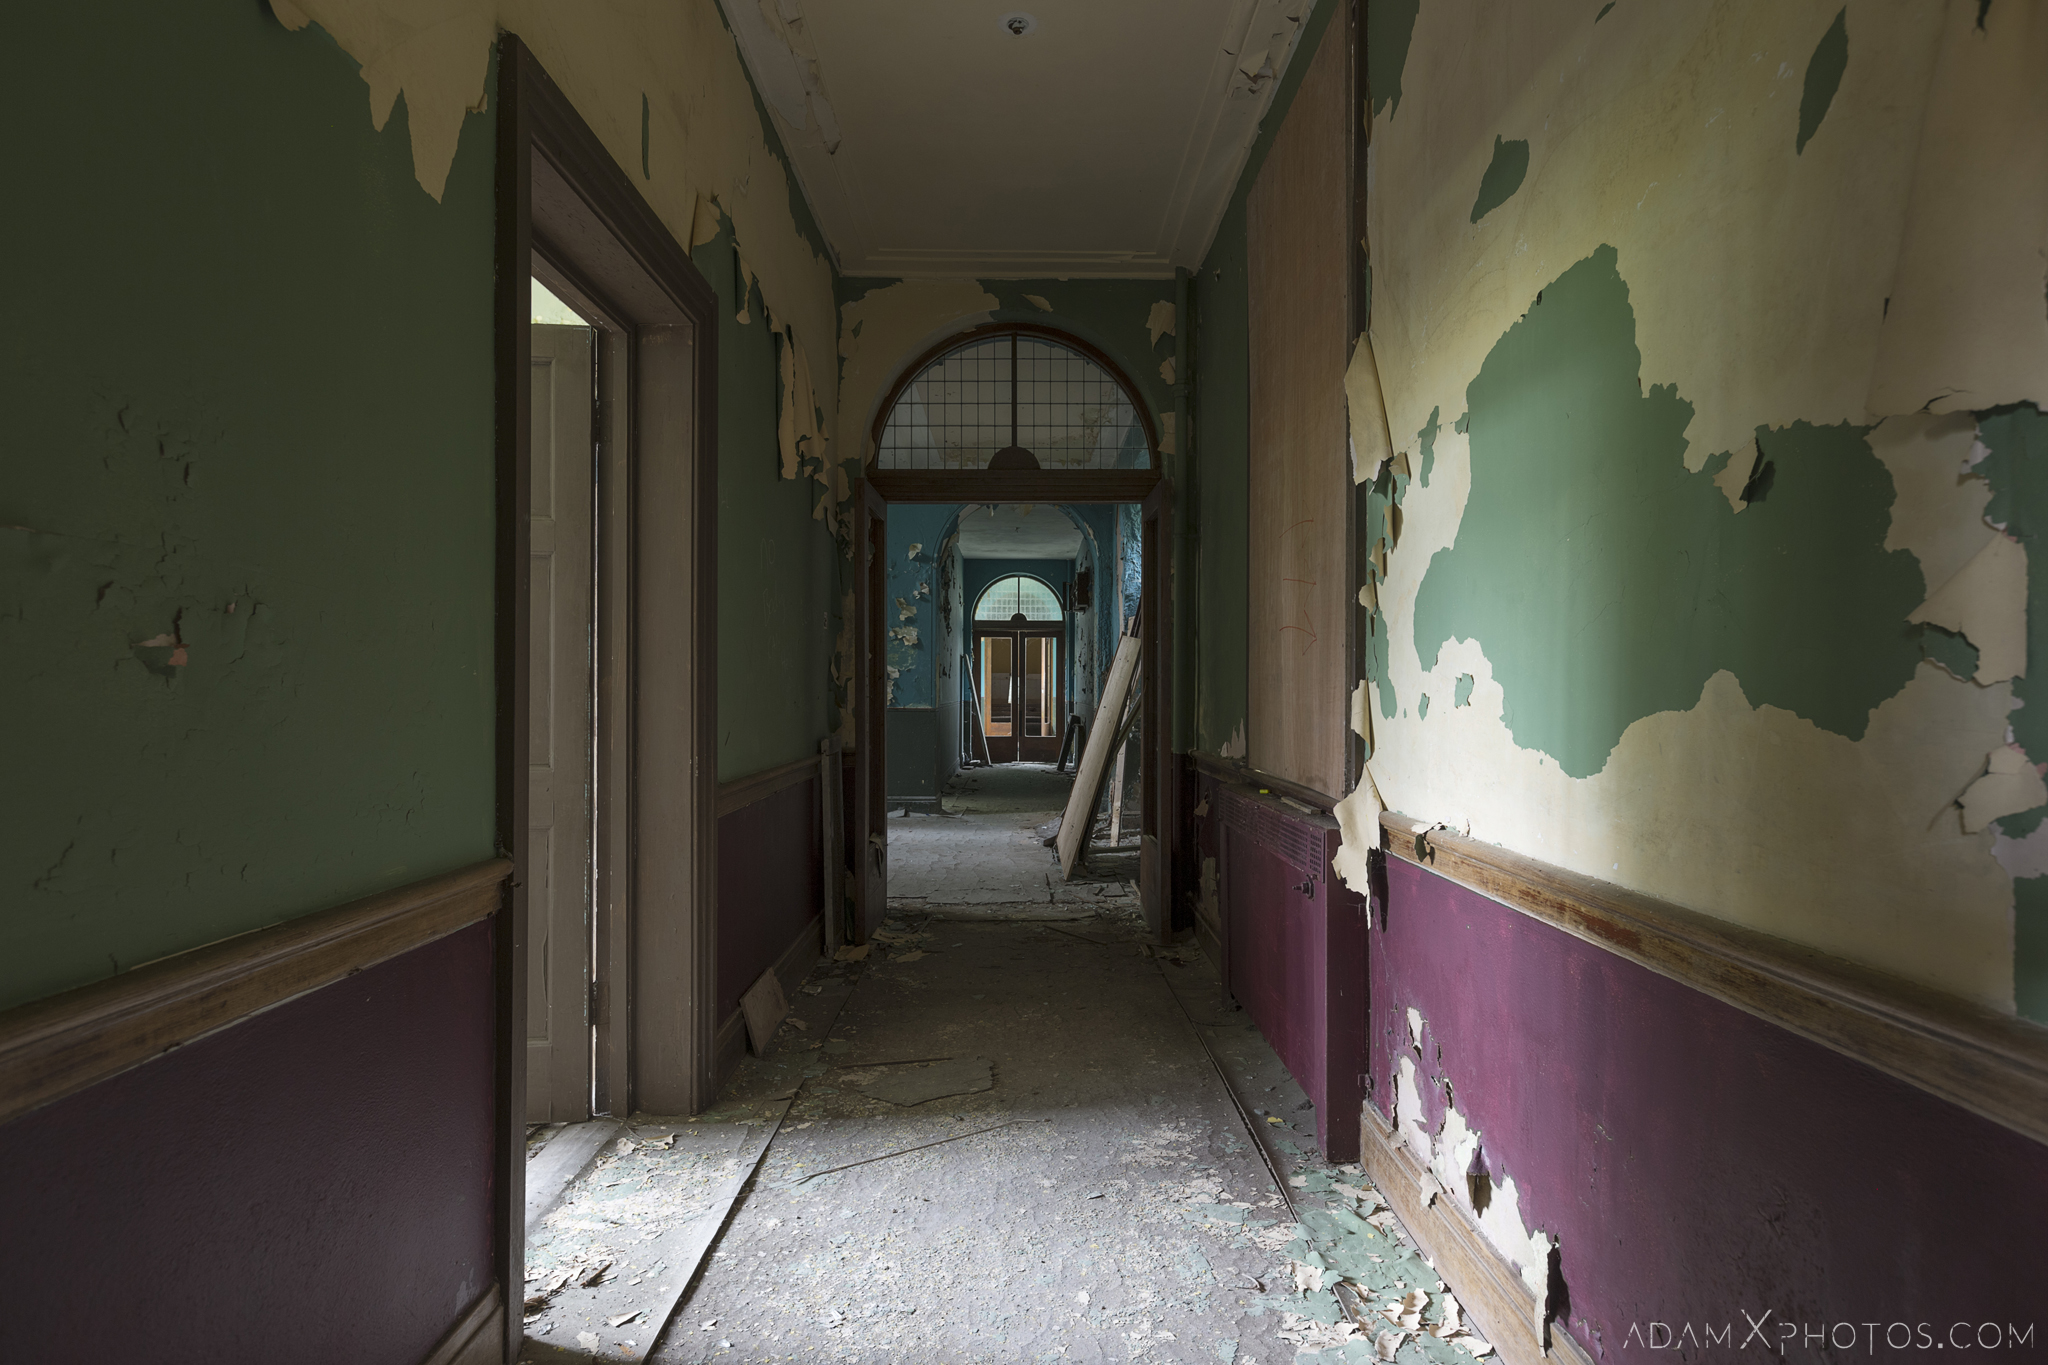 purple green corridor De Salle College School Colaiste Iosagain Ballyvourney County Cork Adam X Urbex Urban Exploration Ireland Access 2017 Abandoned decay lost forgotten derelict location creepy haunting eerie